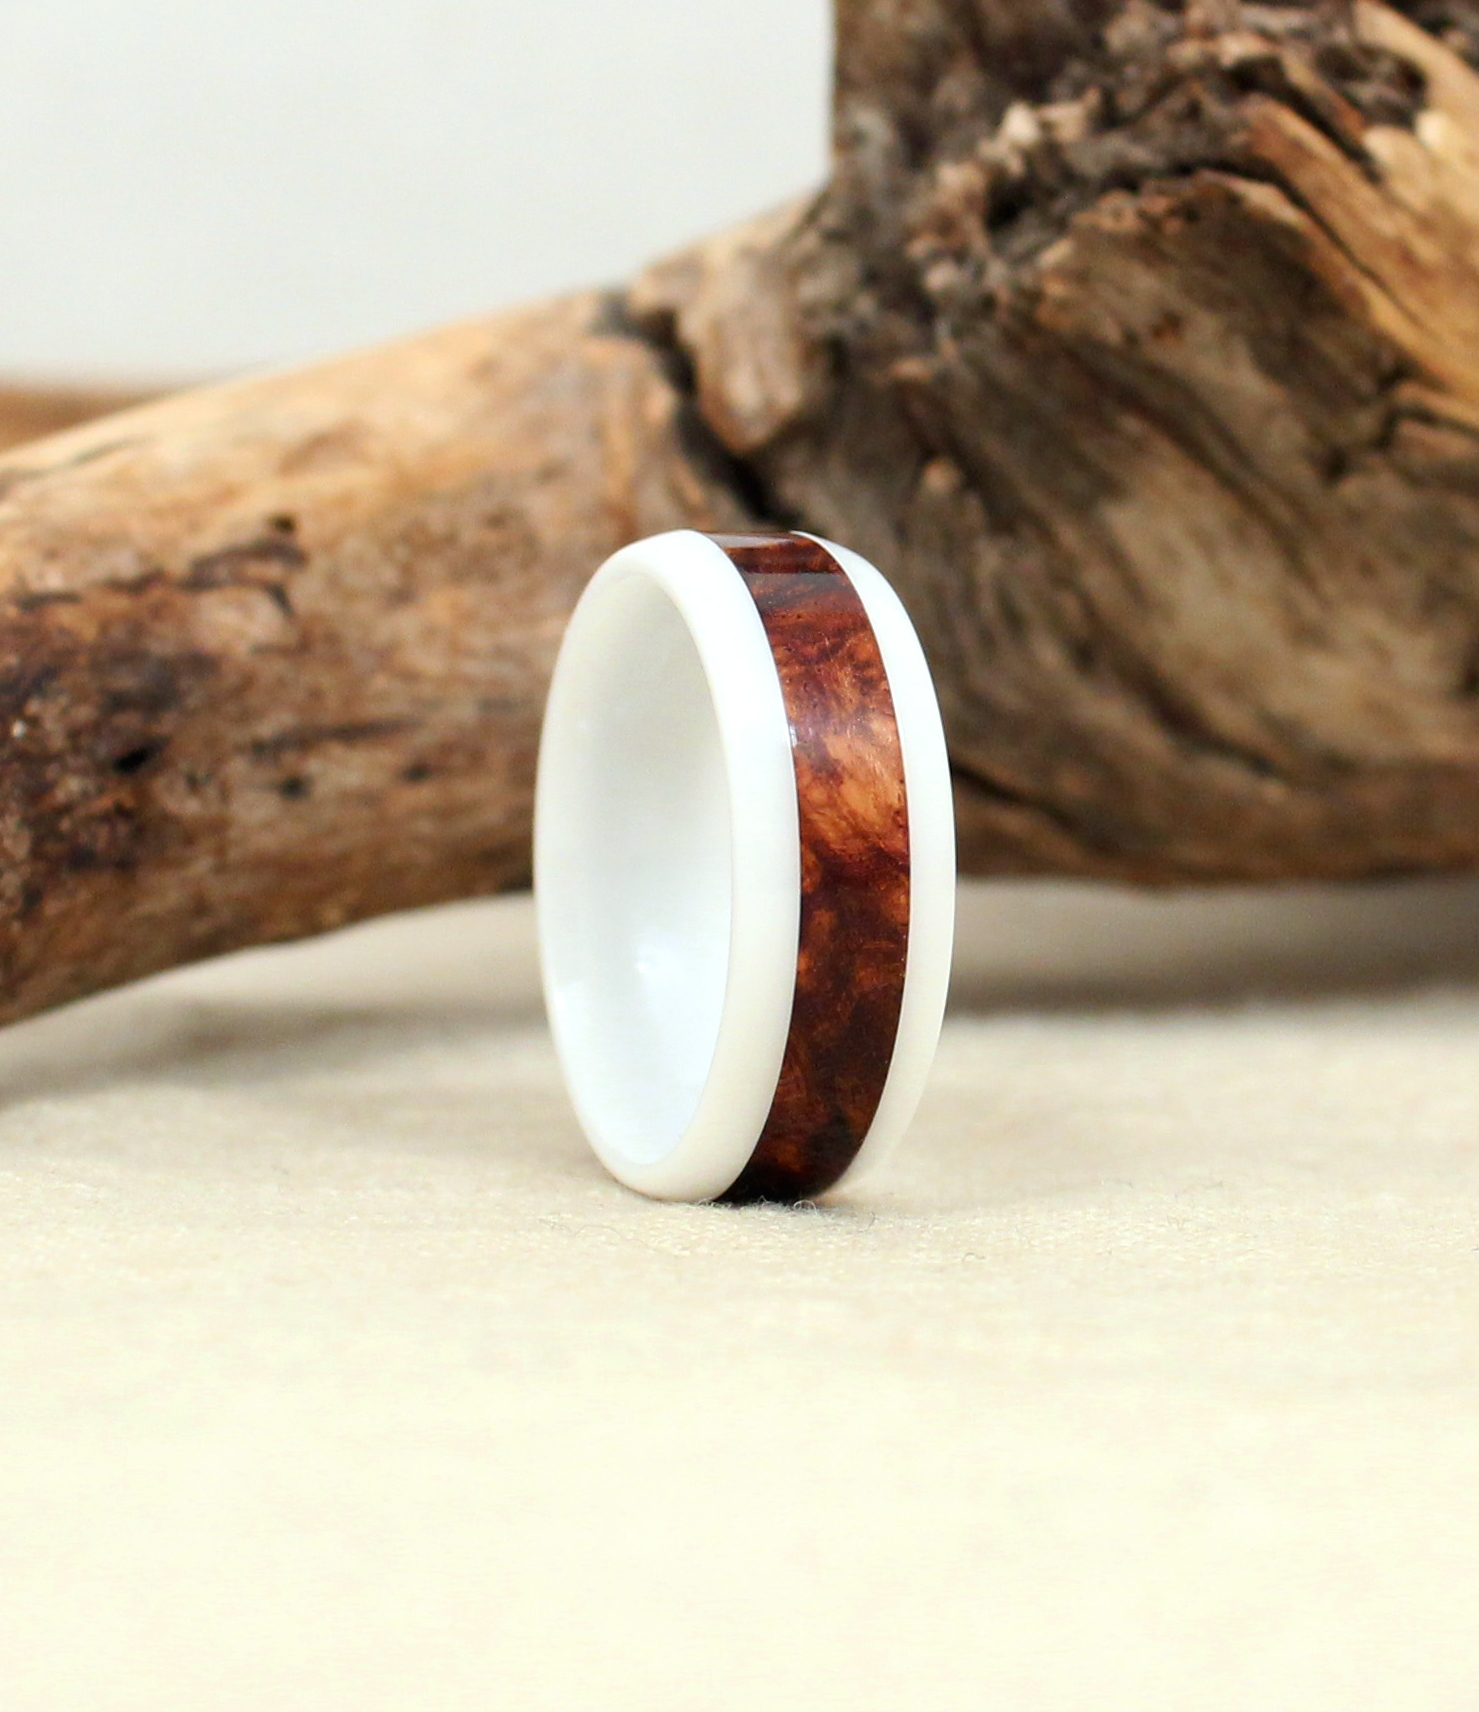 Exhibition Honduras Rosewood Burl and White Ceramic Wood Ring